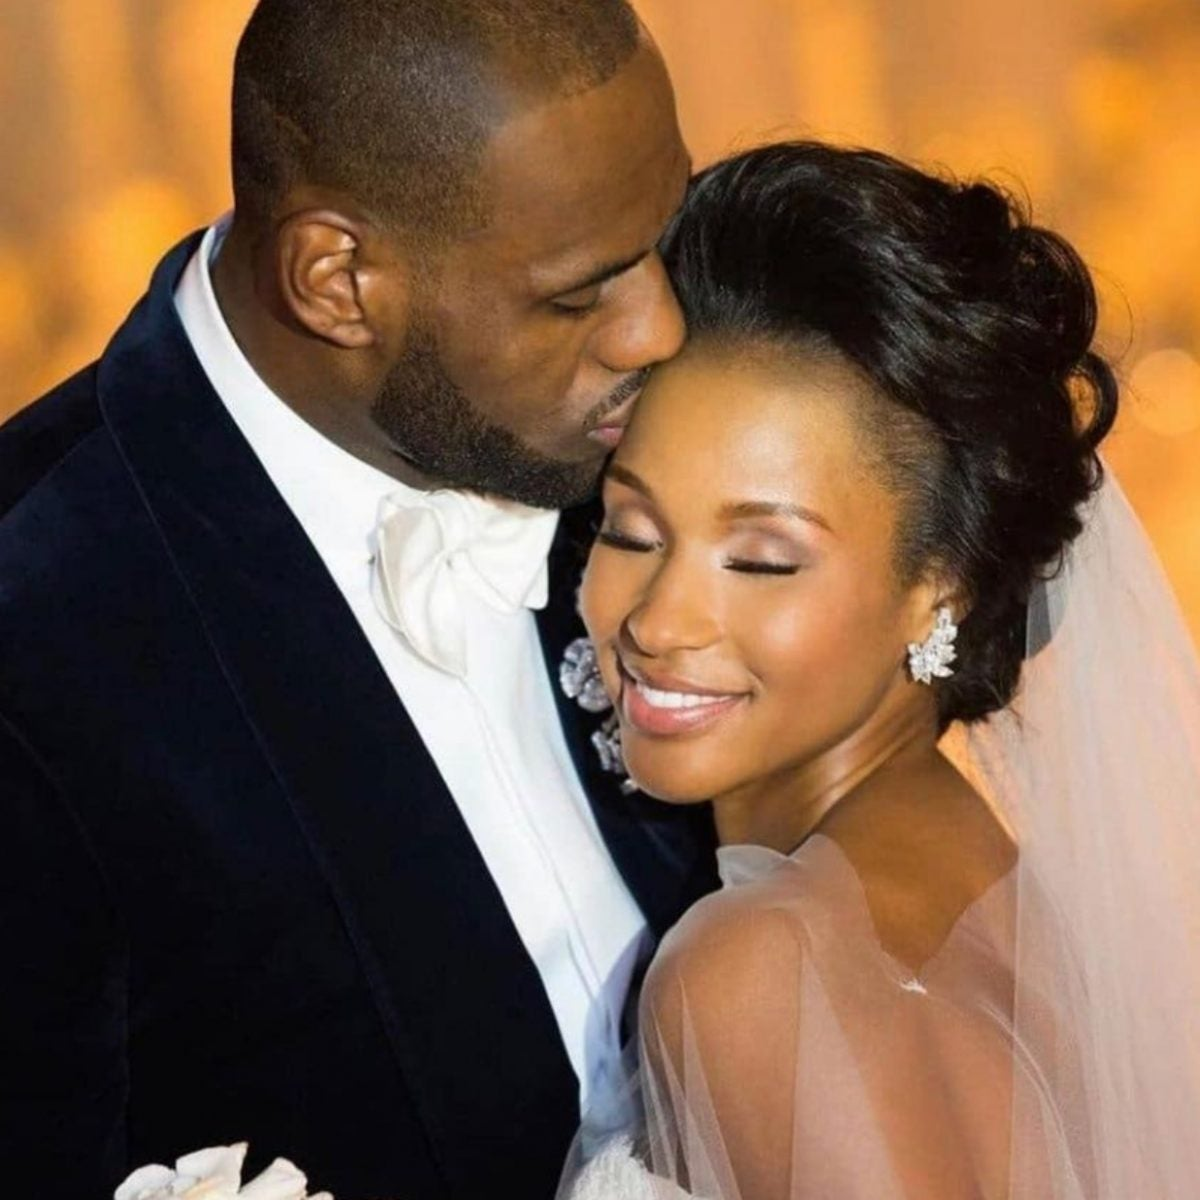 LeBron And Savannah James Celebrate Wedding Anniversary, Share Never-Before-Seen Photos From Their Big Day